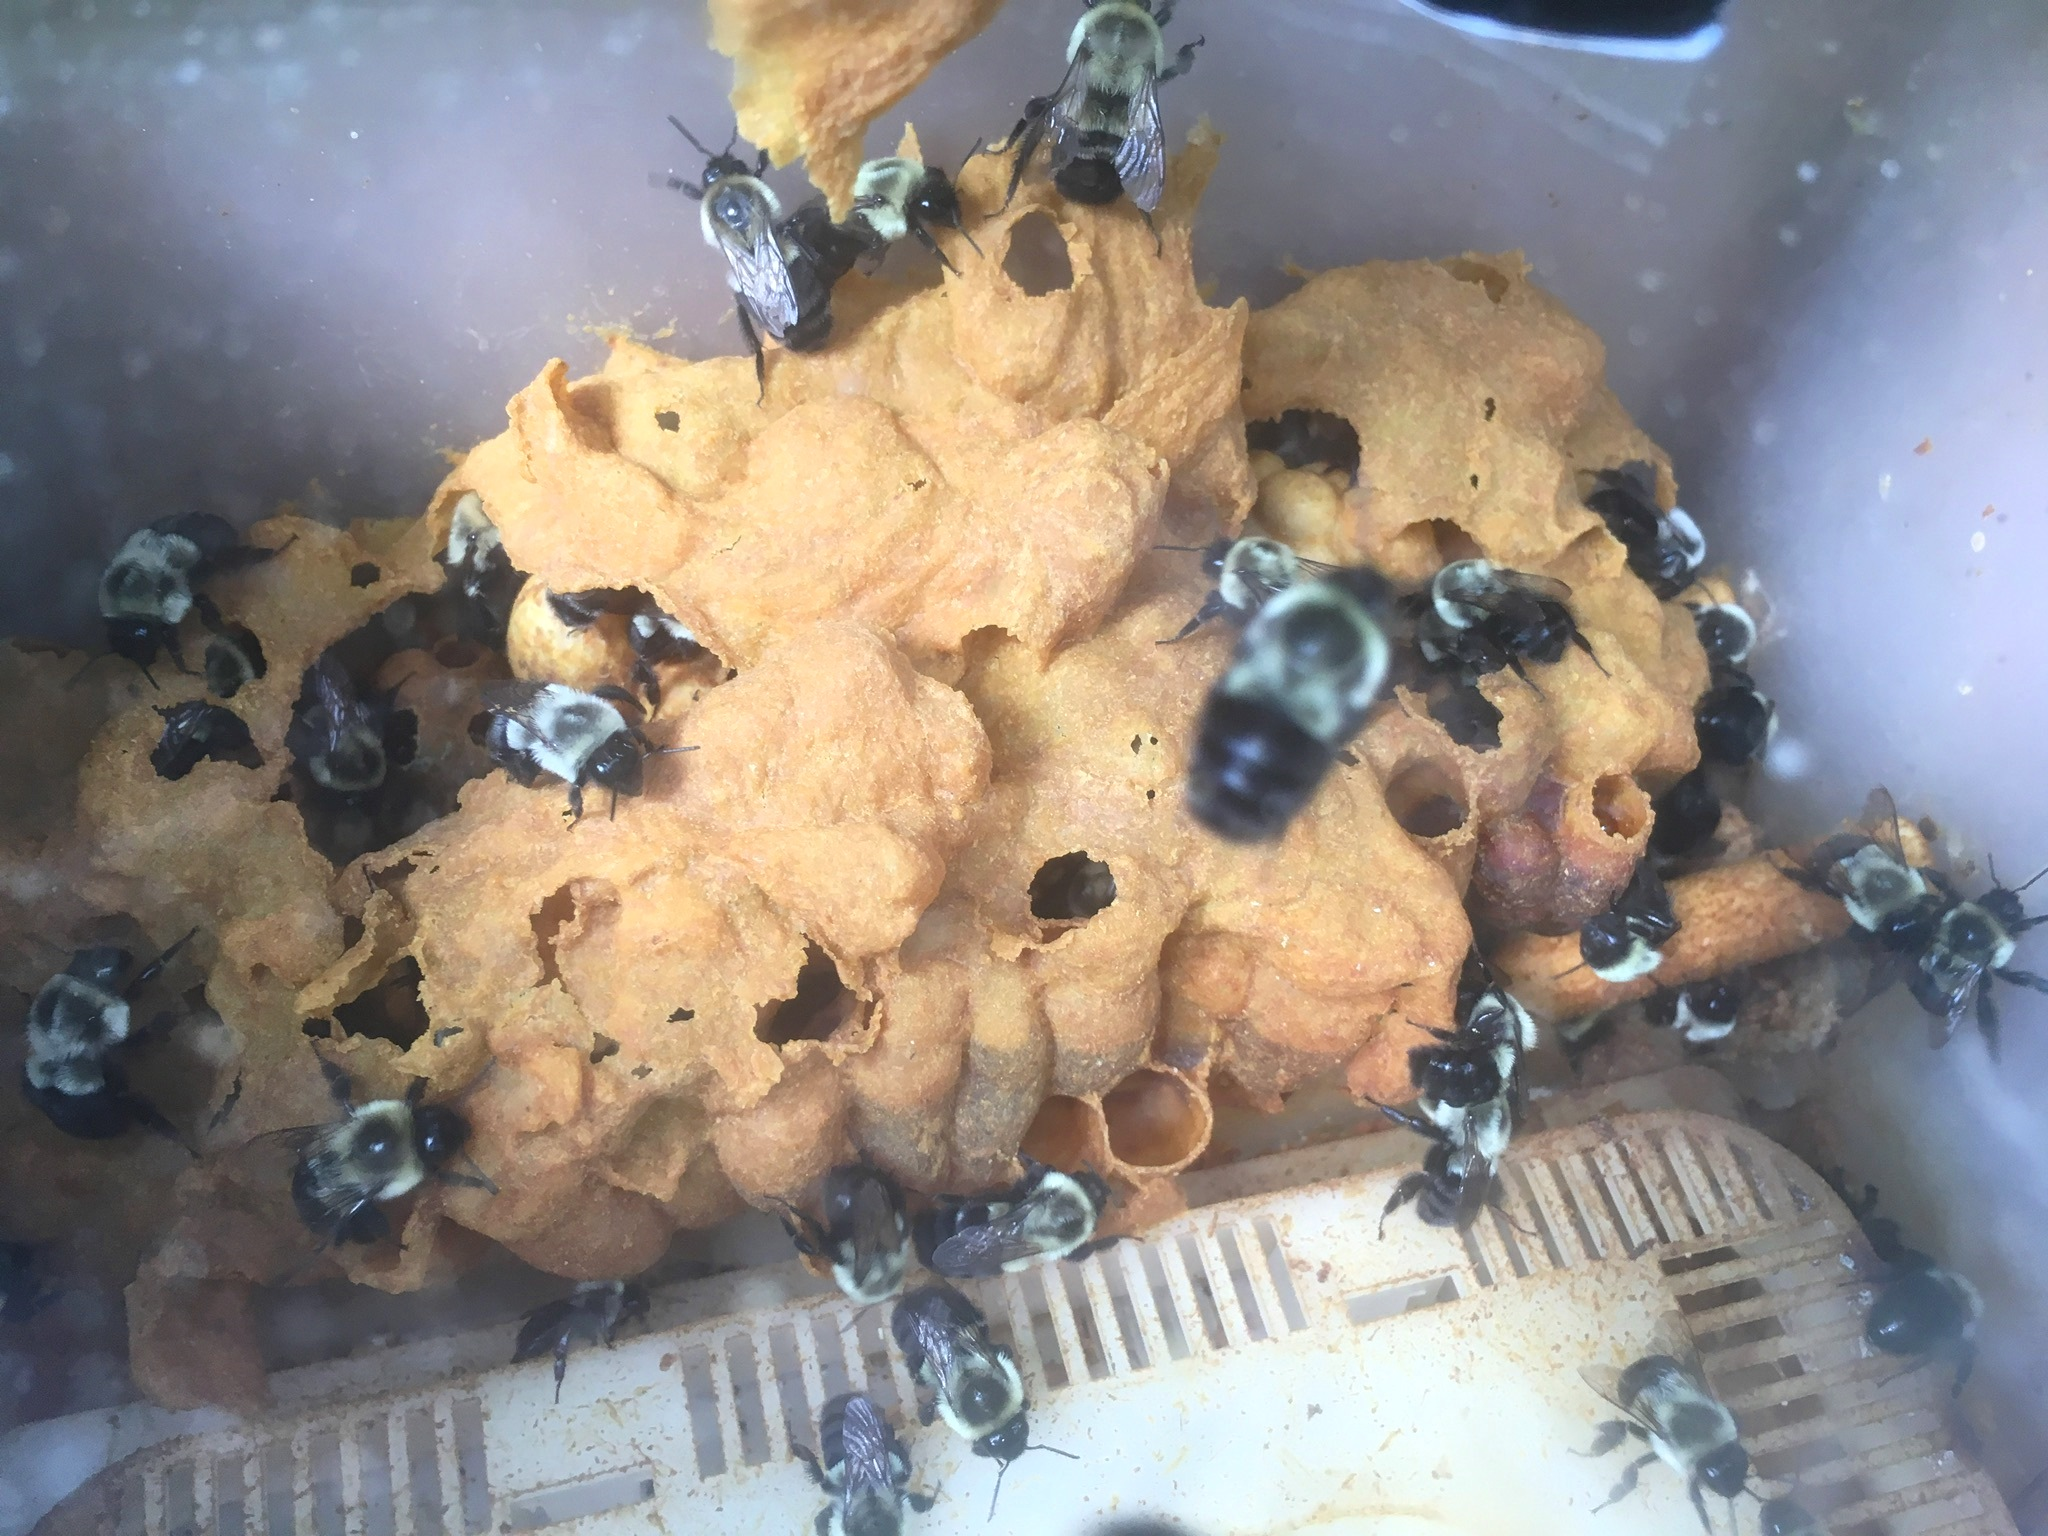 Bumblebees at work covering the colony with an insulating wax canopy to maintain its temperature in cold conditions.